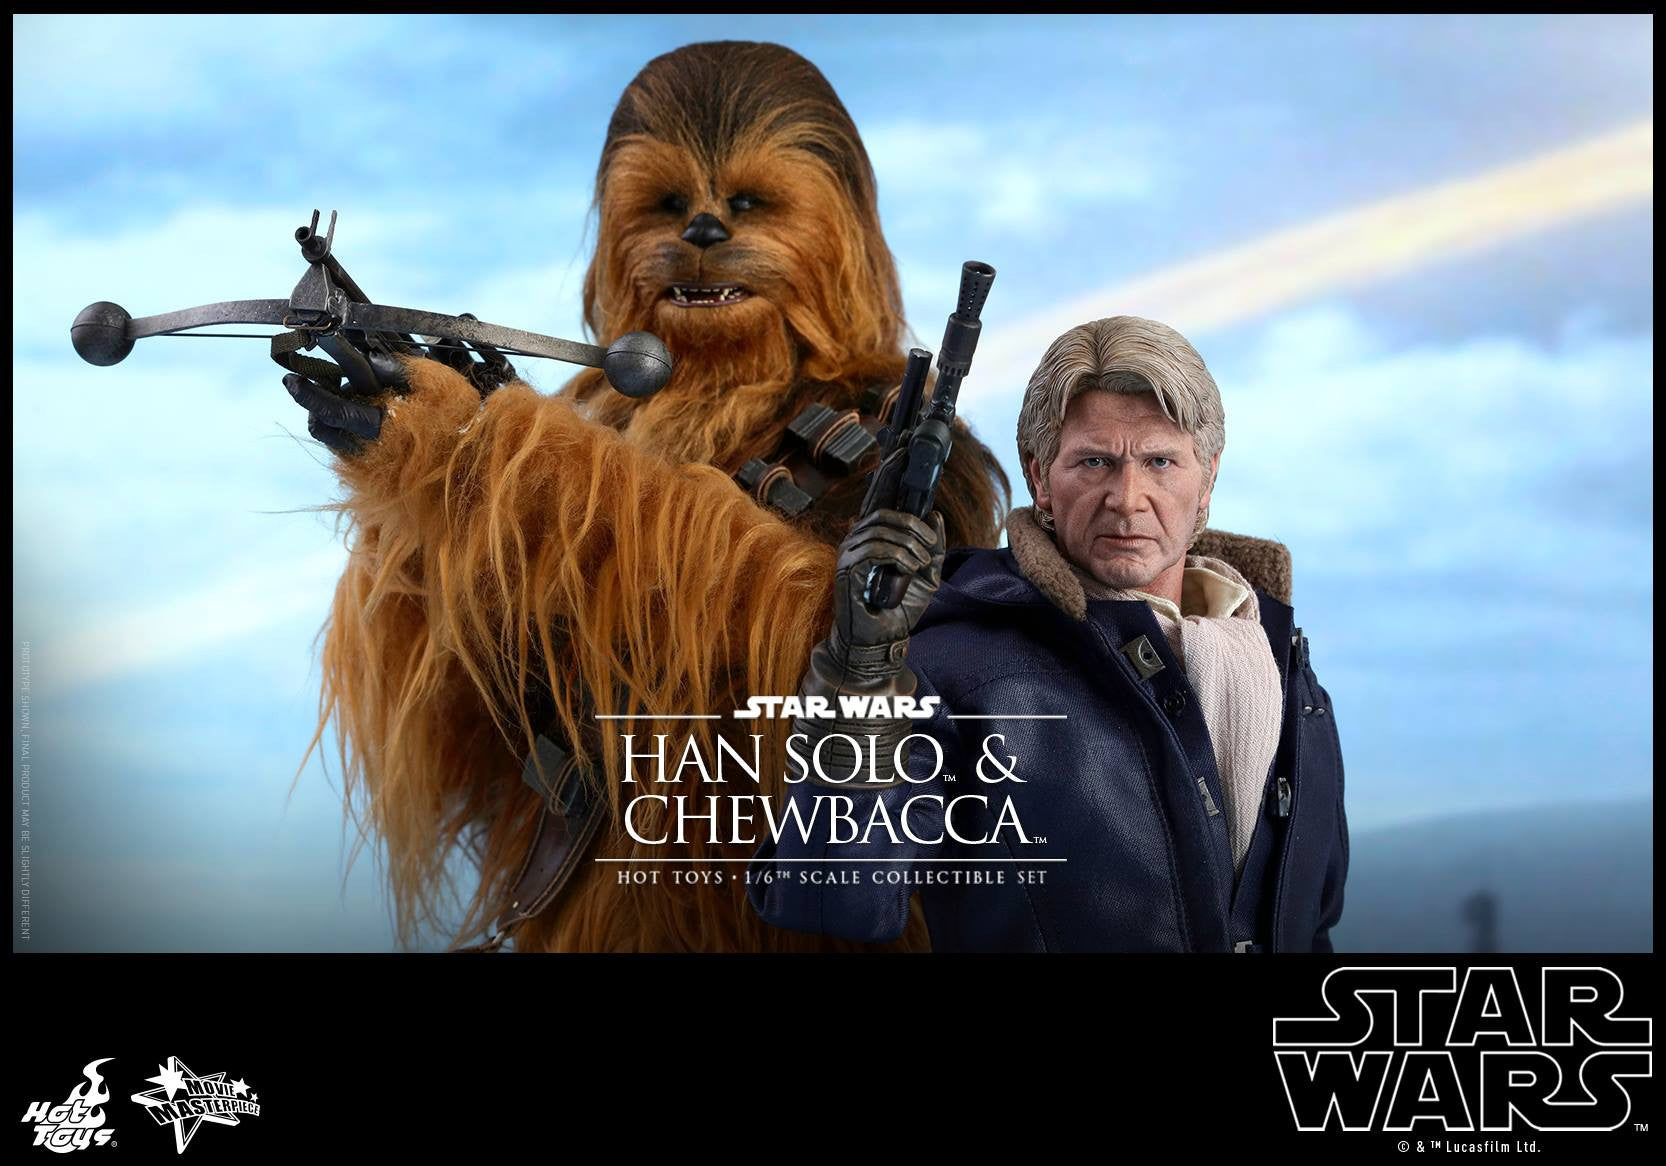 Hot Toys - MMS376 - Star Wars: The Force Awakens - Han Solo & Chewbacca Set - Marvelous Toys - 2